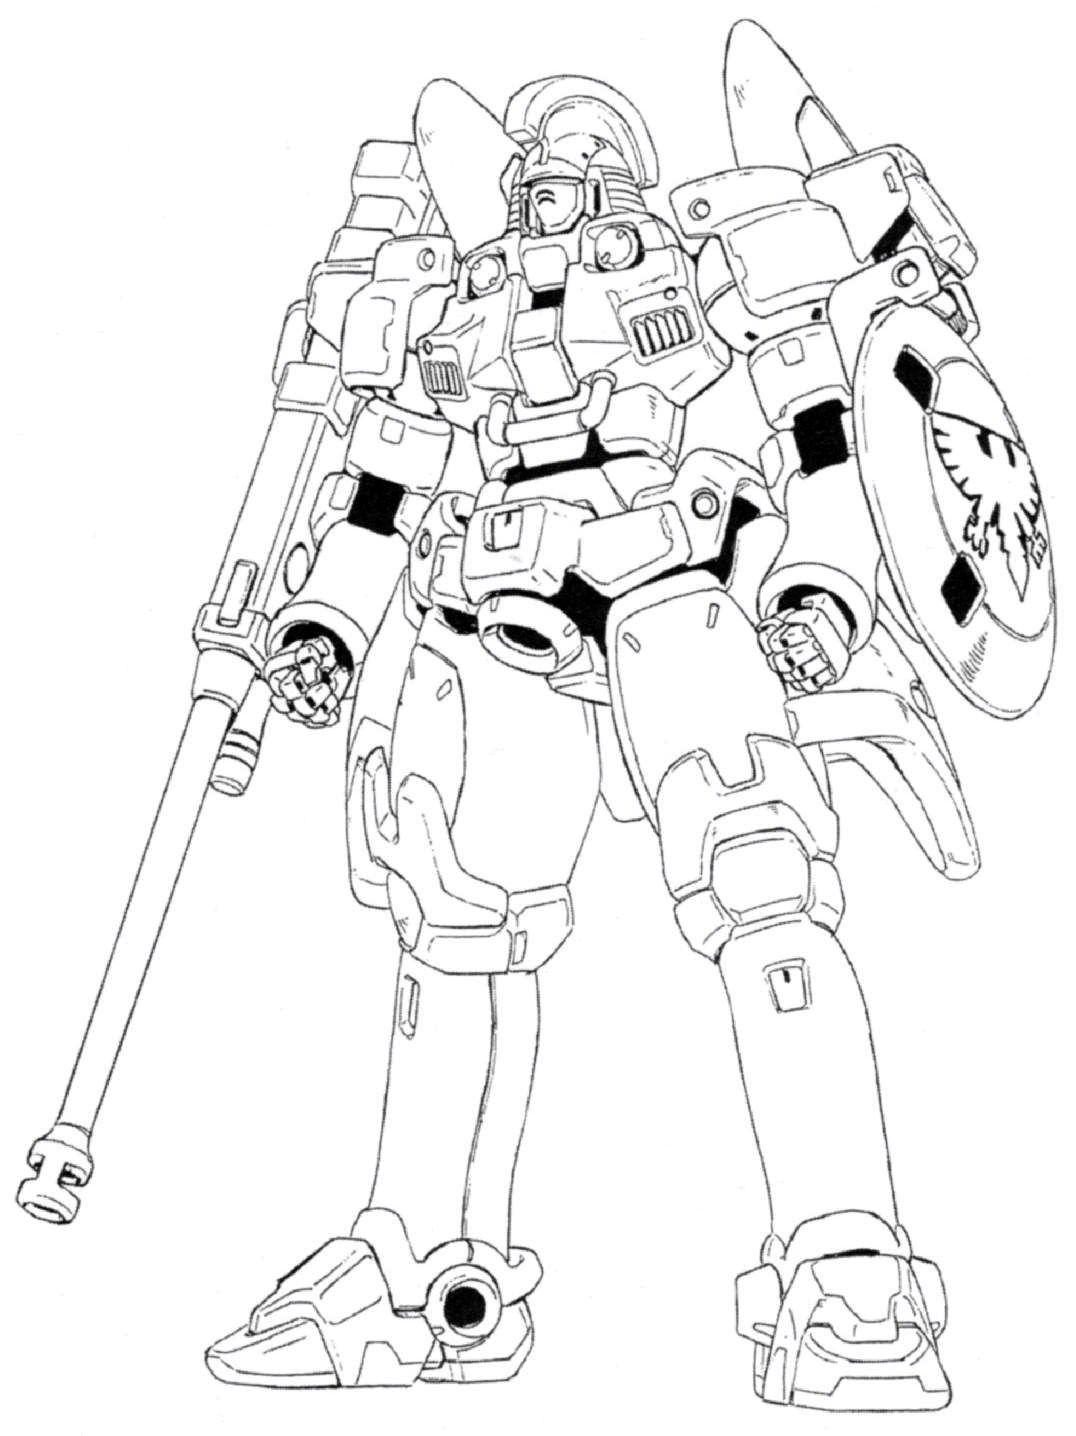 gundam 00 wiki characters auto electrical wiring diagram Stratocaster 5-Way Switch Wiring 2000 bonneville engine diagram coolant 2007 vw jetta fuel filter replacement ground fault circuit interrupter wiring diagram